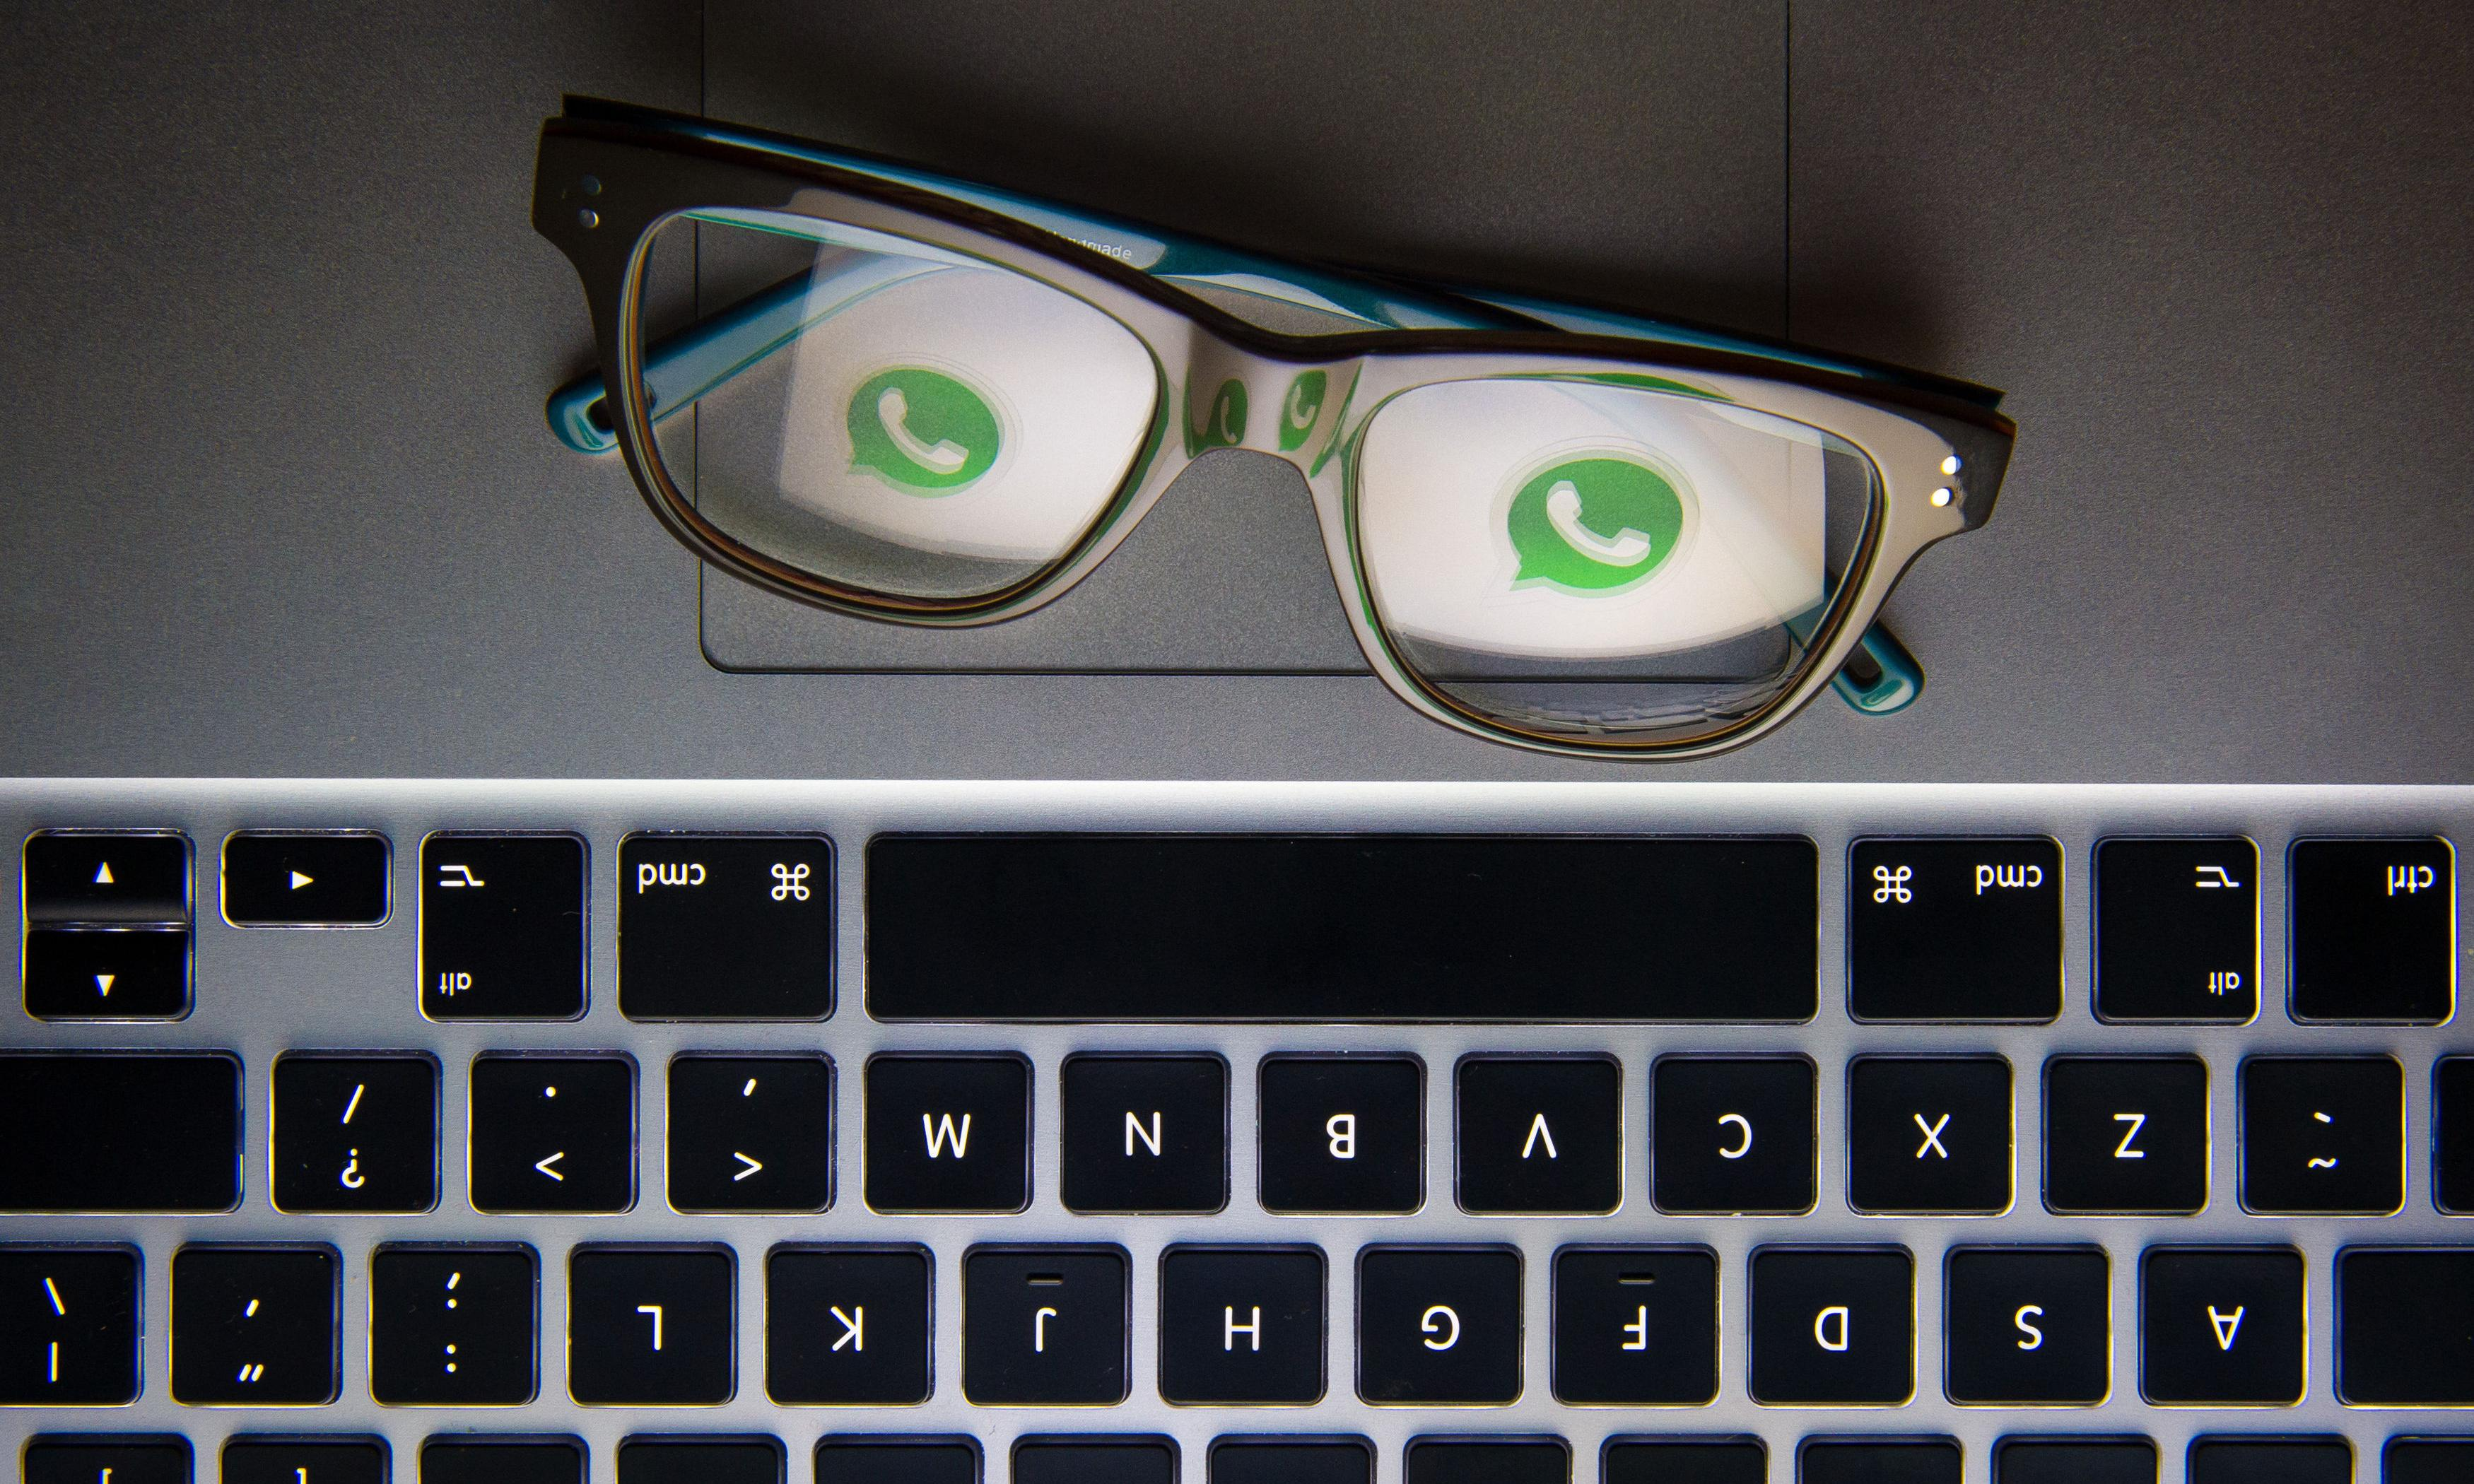 The WhatsApp spyware story tells us that nothing is secure